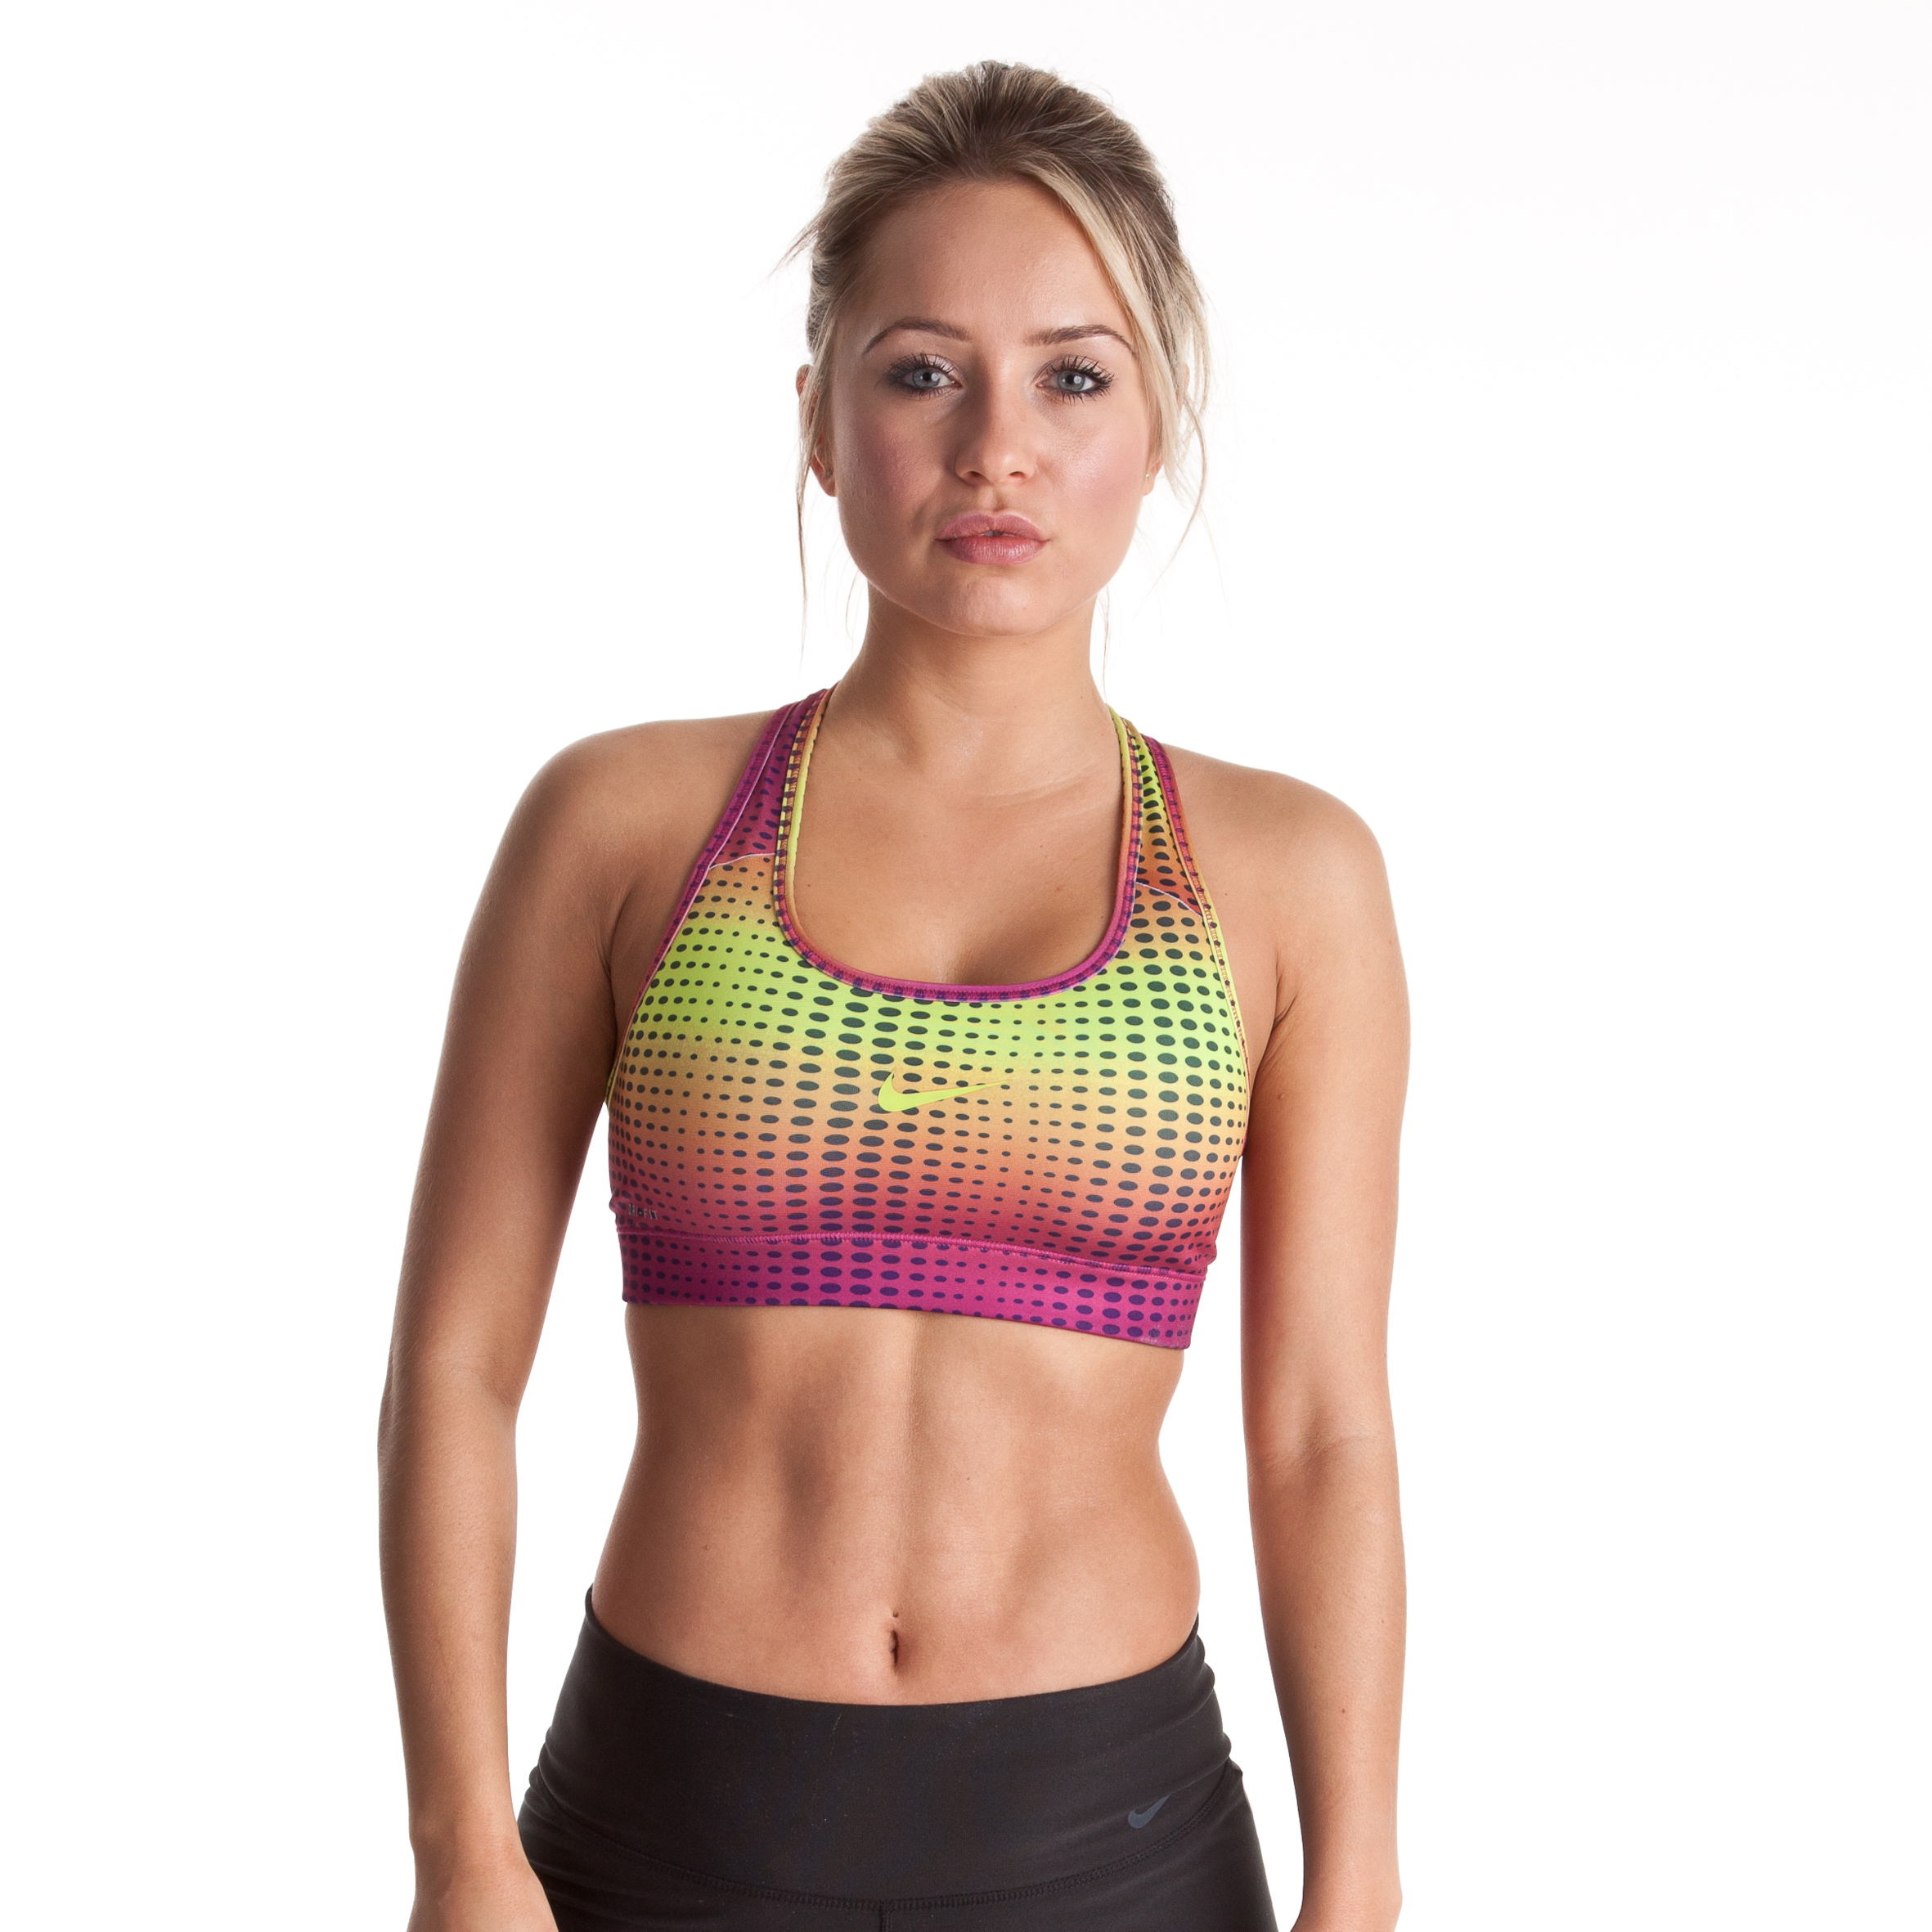 Nike Pro Bra - Atomic Green/Rave Pink/Atomic Green - Womens